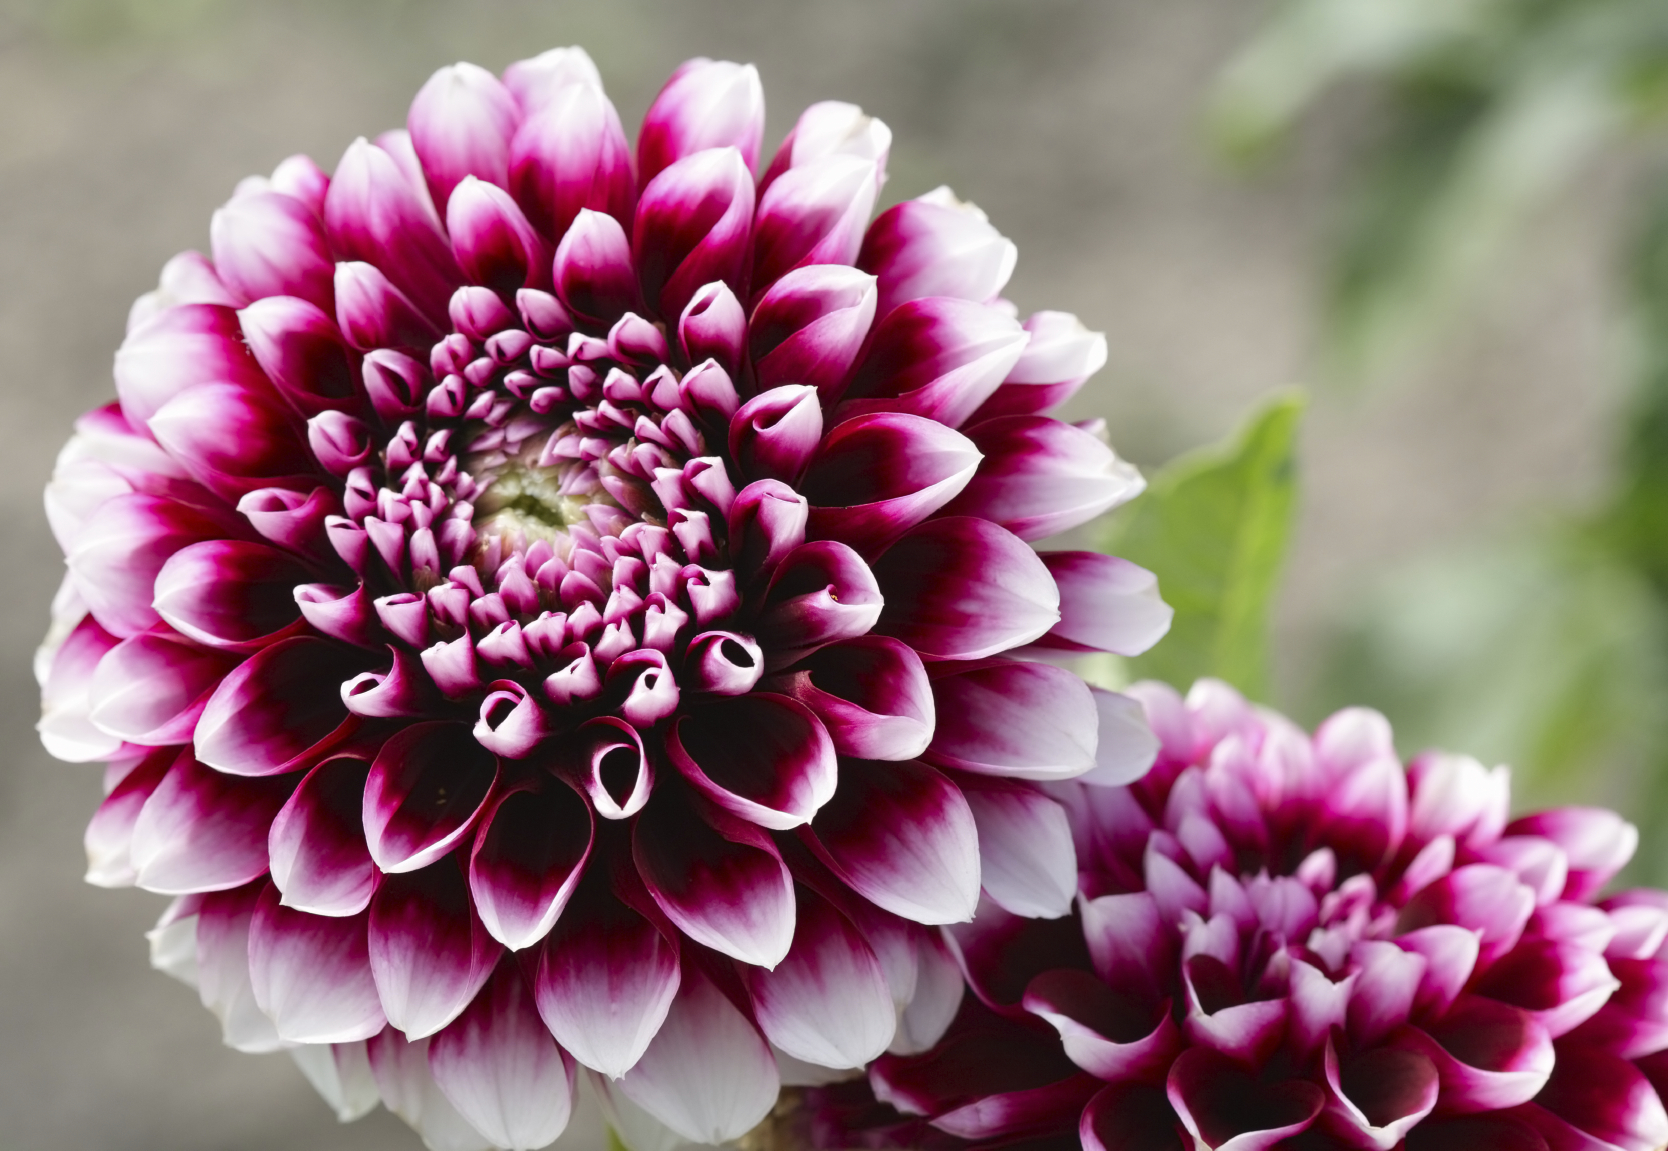 Top 10 most awesome beautiful flowers in the world with details in the list of top 10 most awesome beautiful flowers in the world dahlia is at no 7is is the 7th awesome beautiful flowers in the world and also on our izmirmasajfo